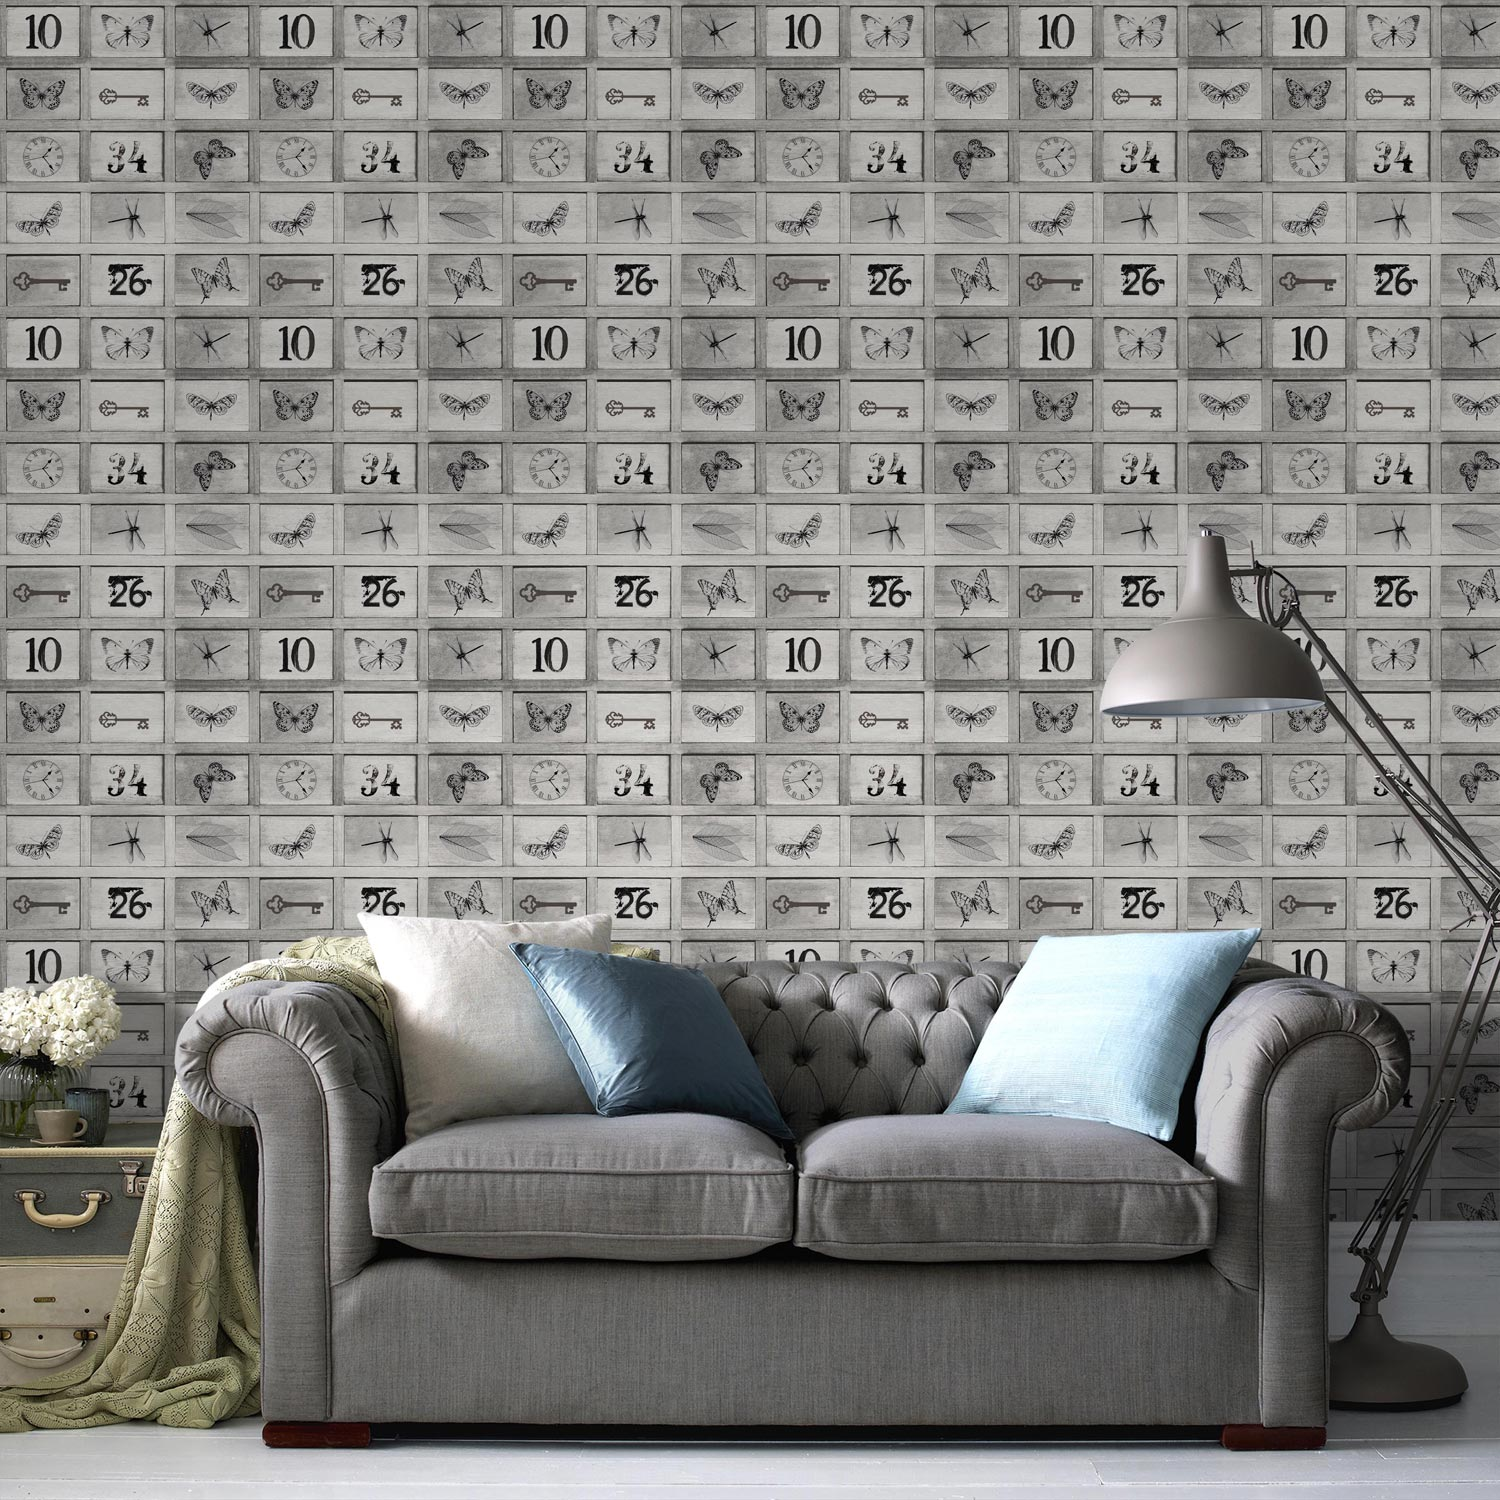 Can I Put Wallpaper On Top Of Wallpaper: Papier Peint Intissé Curiosité Taupe